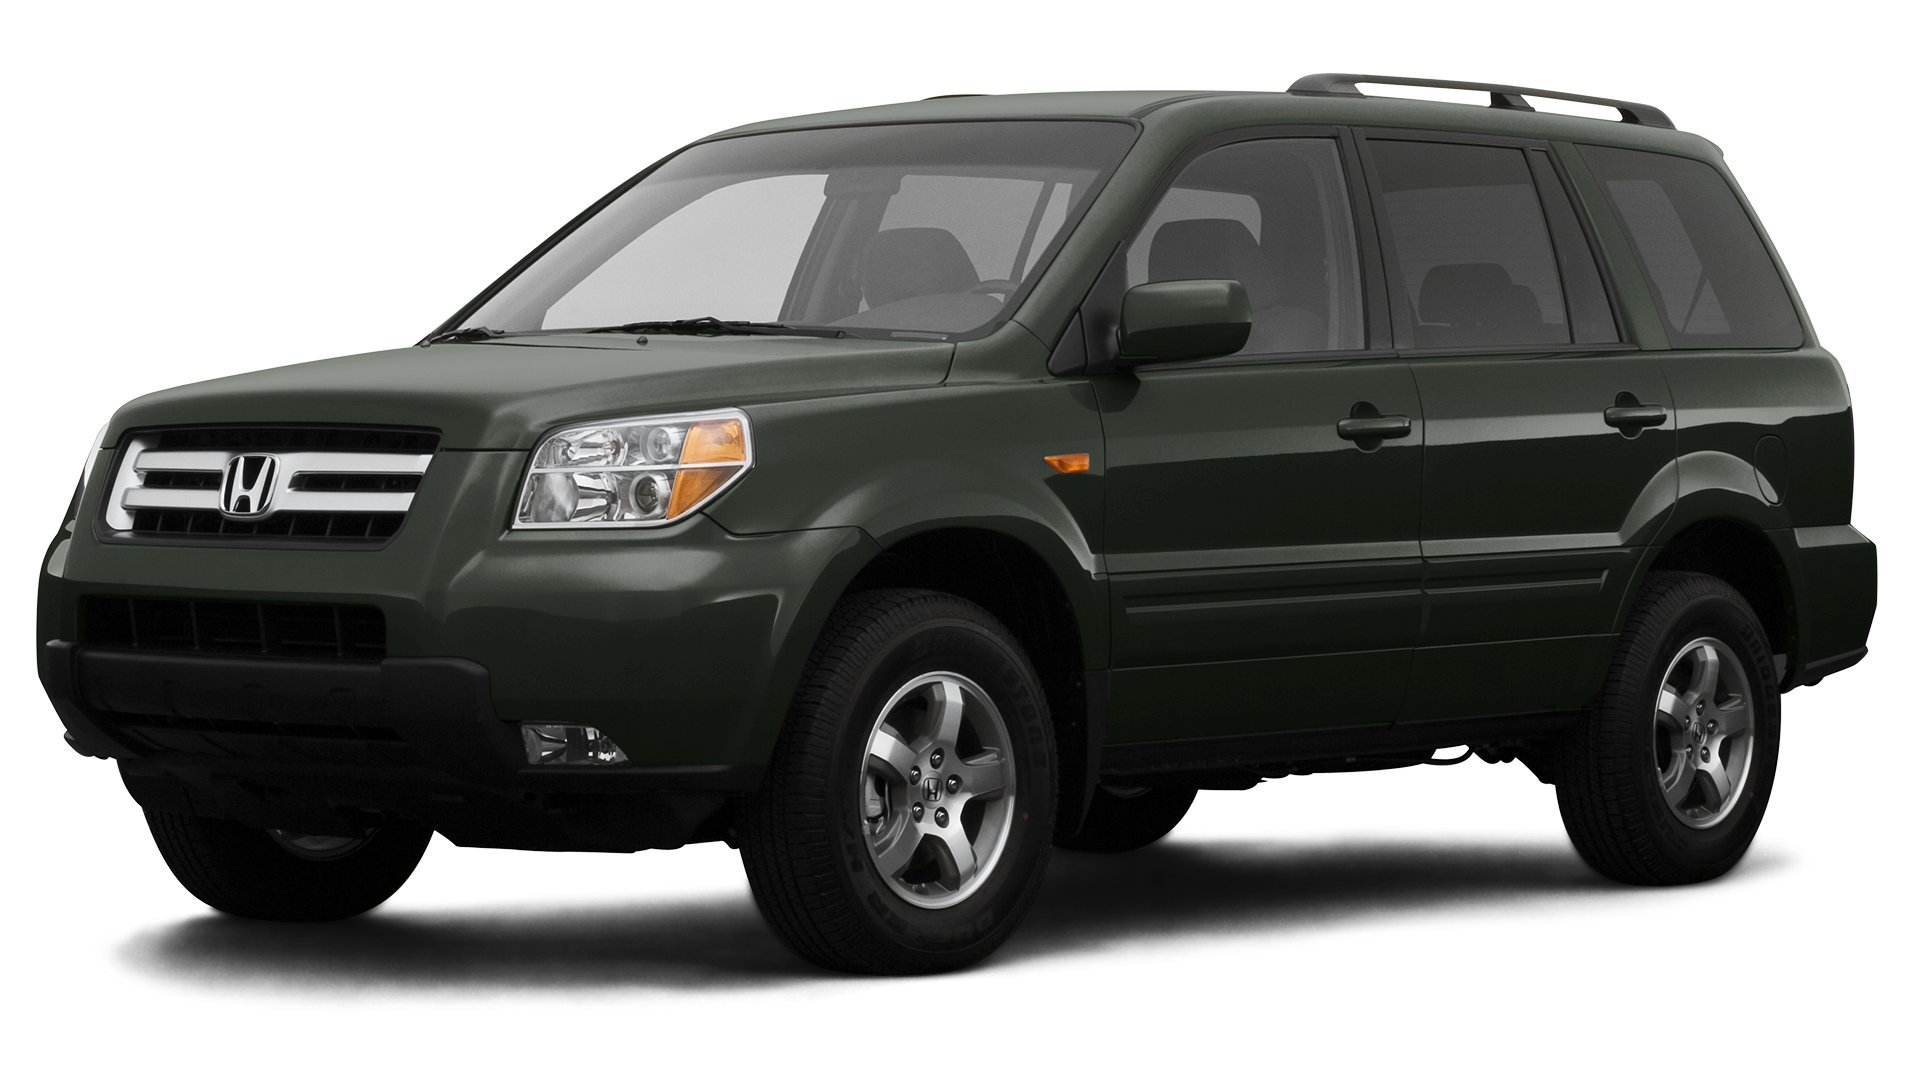 2007 honda pilot reviews images and specs for Honda pilot images